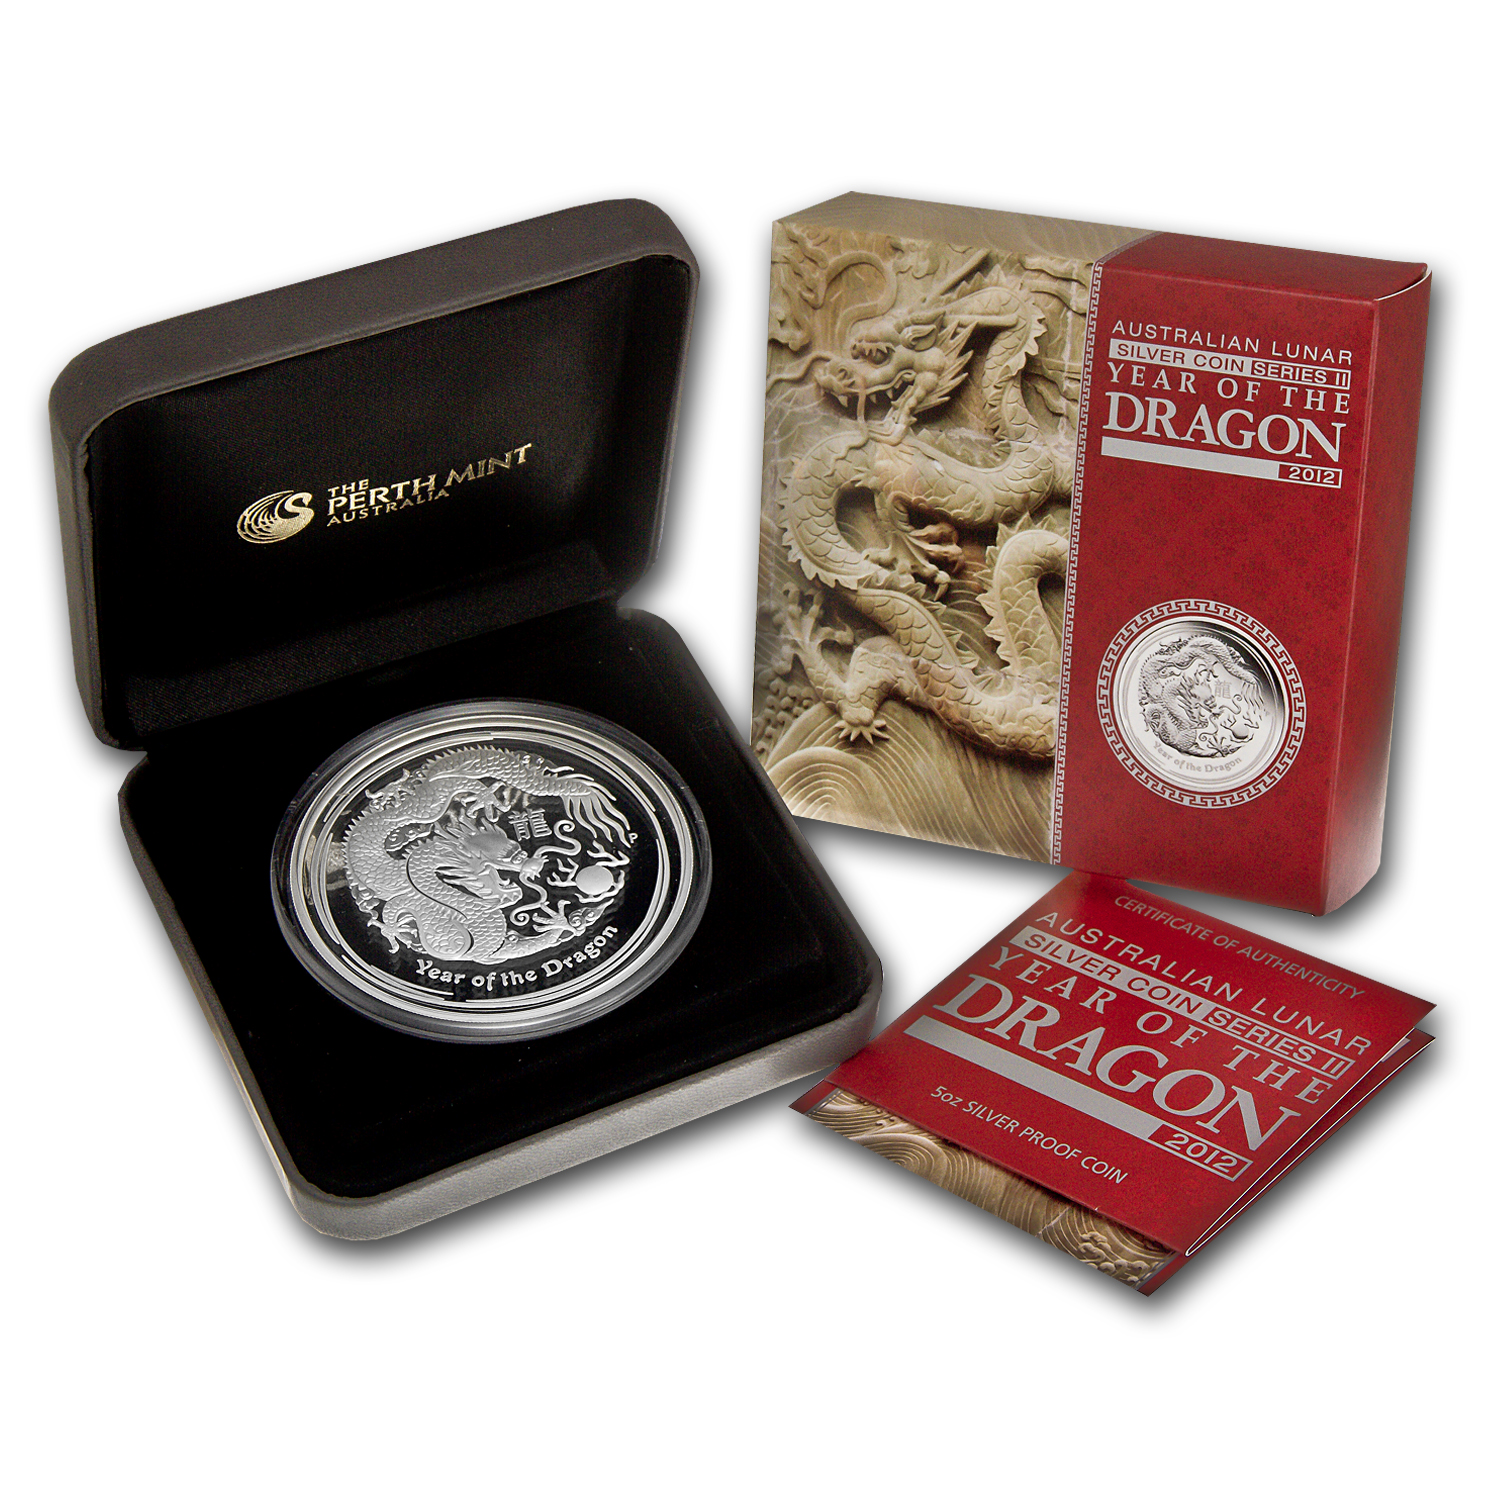 2012 Australia 5 oz Silver Year of the Dragon Proof